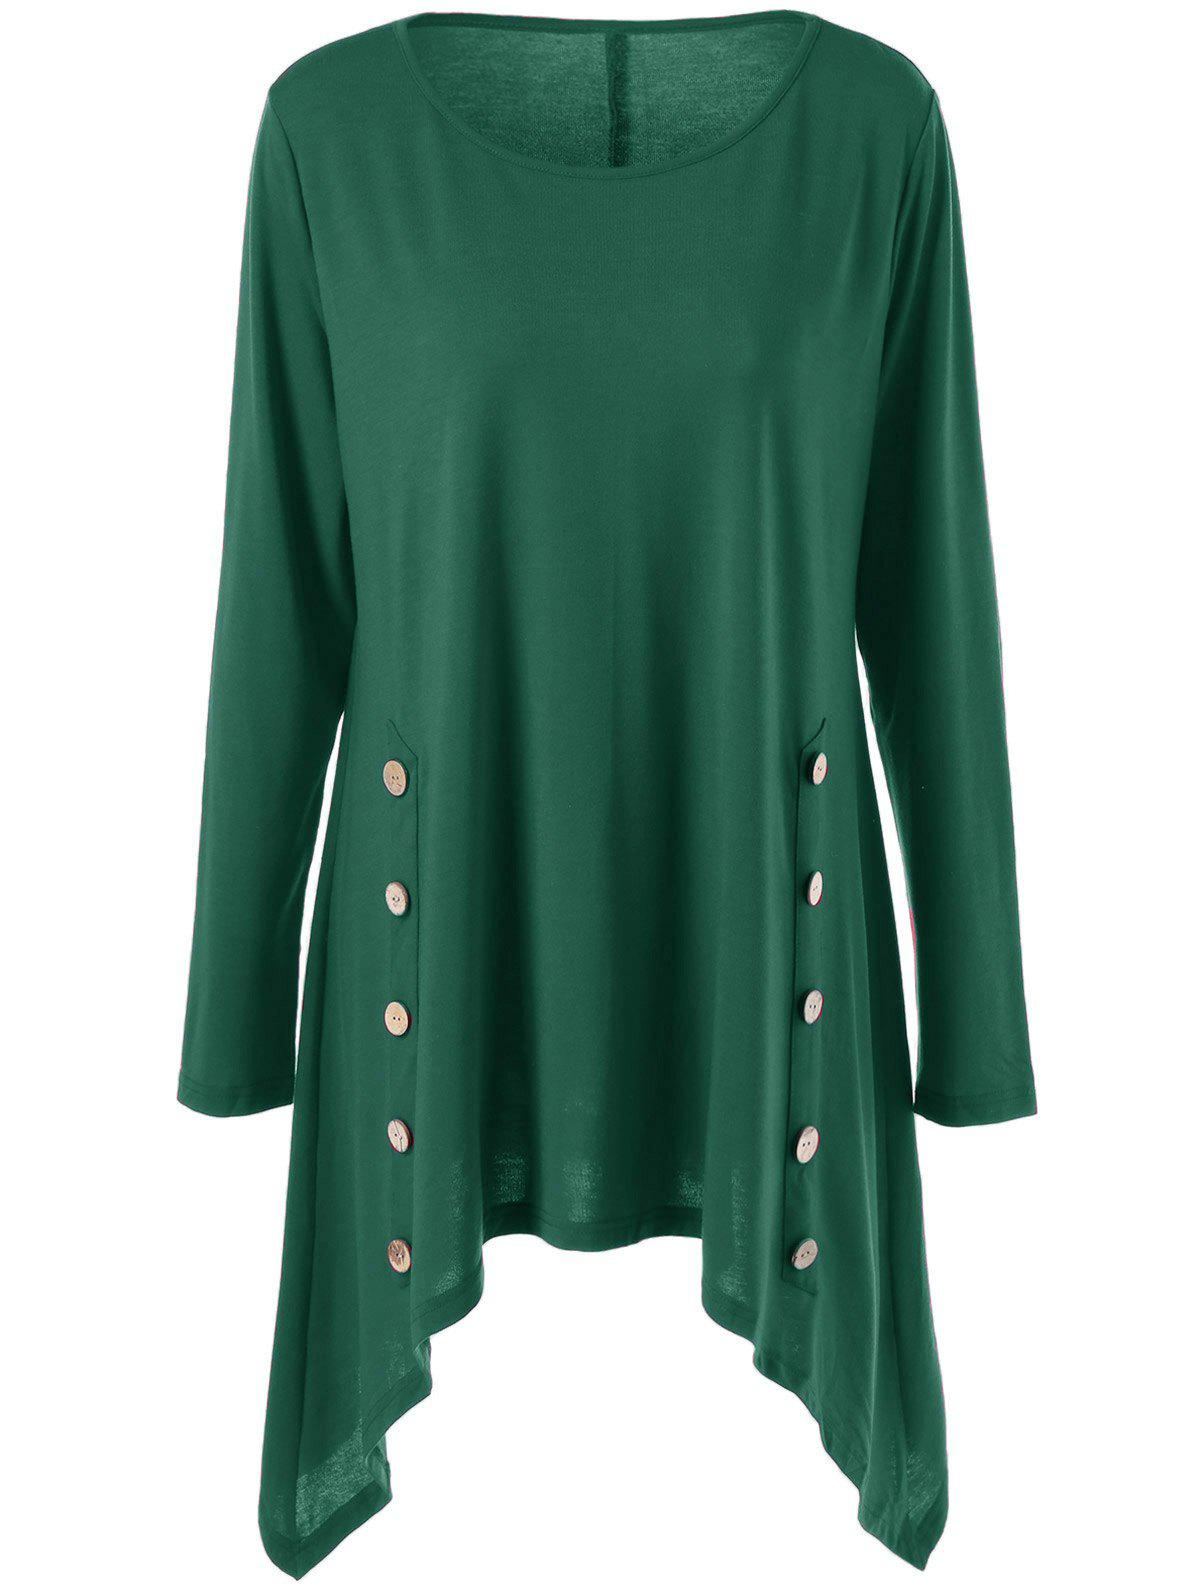 Long Sleeve Plus Size Double-Breasted Asymmetrical T-ShirtWOMEN<br><br>Size: 3XL; Color: GREEN; Material: Polyester,Spandex; Shirt Length: Long; Sleeve Length: Full; Collar: Scoop Neck; Style: Casual; Season: Fall,Spring; Pattern Type: Solid; Weight: 0.380kg; Package Contents: 1 x T-Shirt;